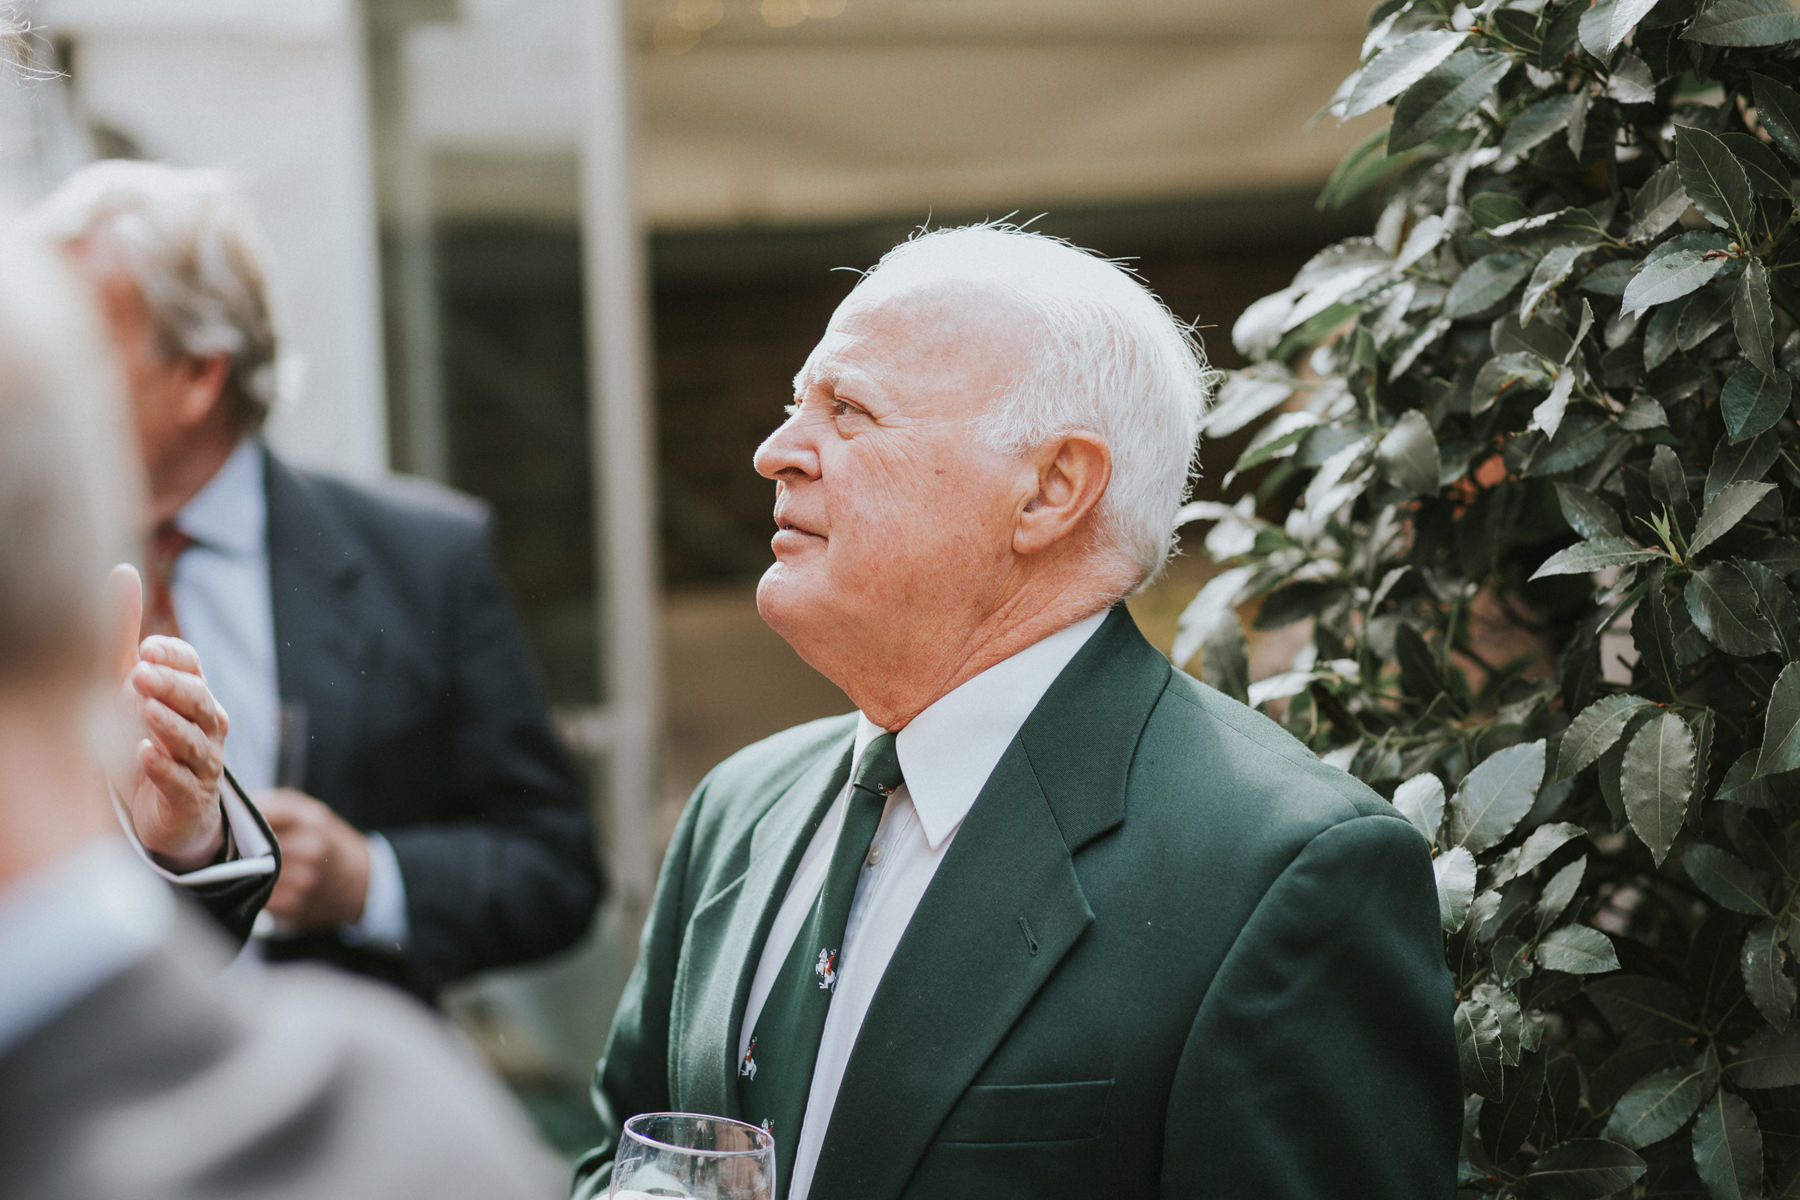 LD-532-Metro-Clapham-Wedding-guest-candid-unposed-photos.jpg